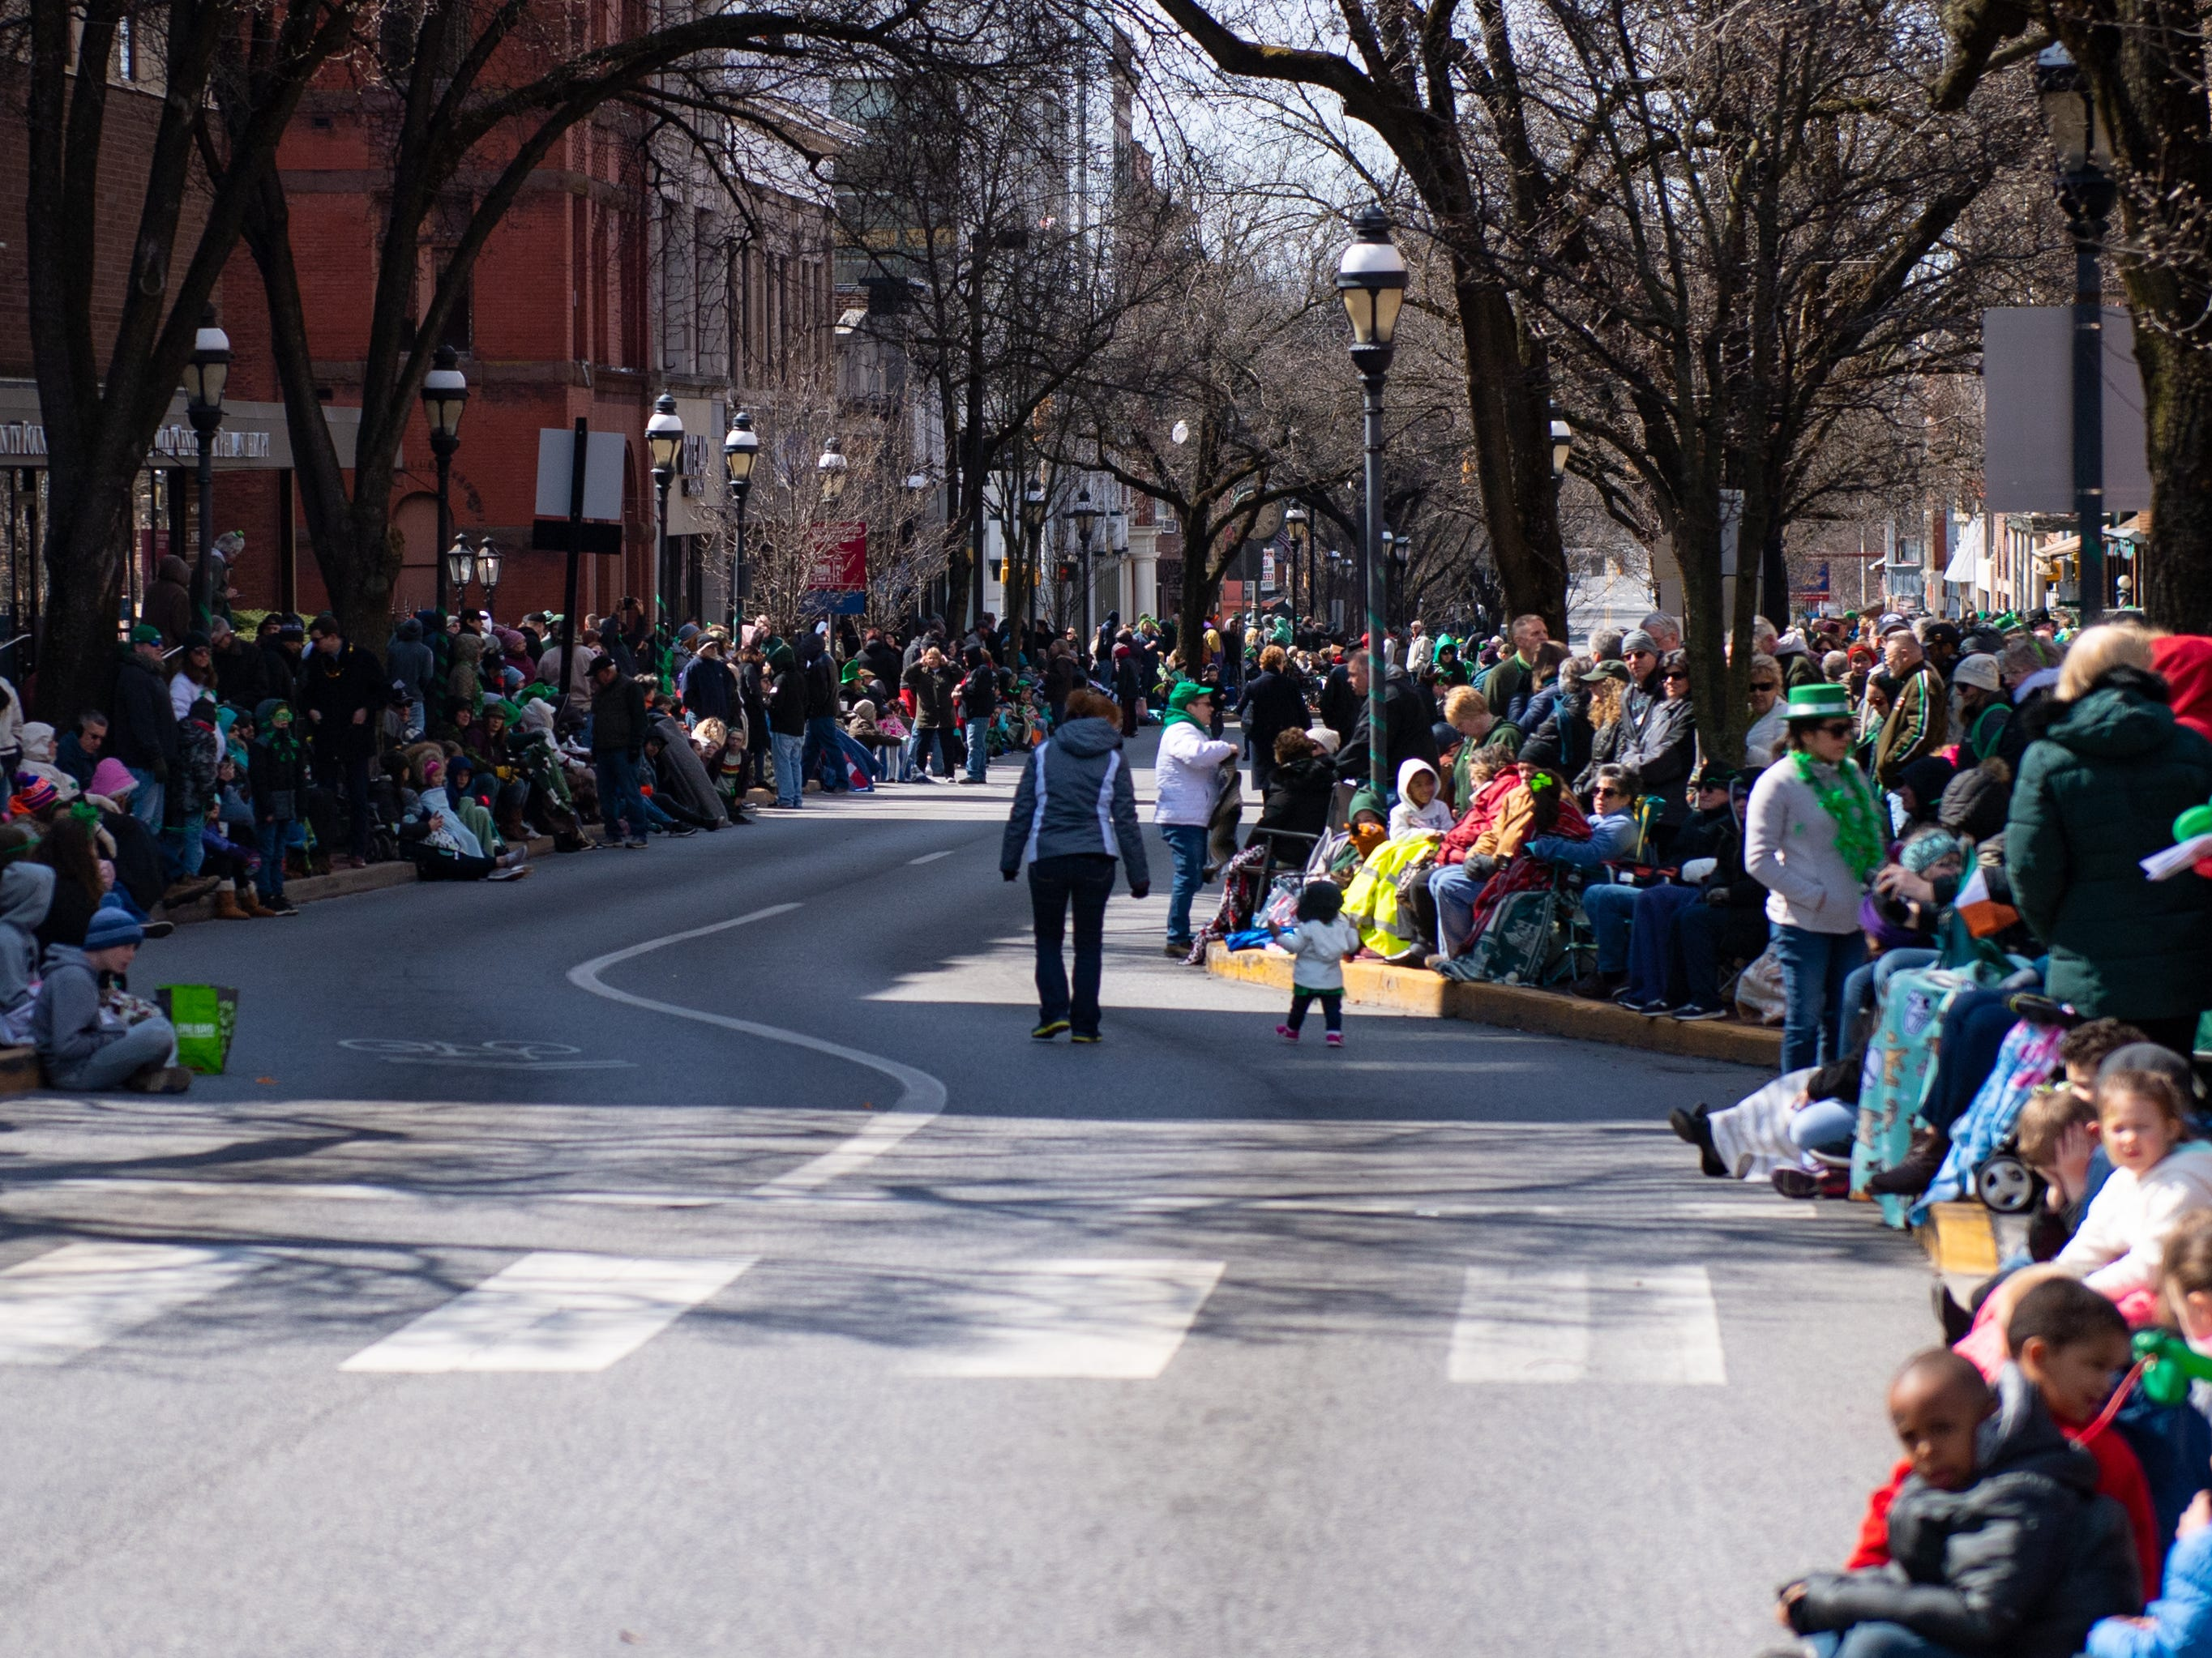 Yorkers wait for the St. Patrick's Day Parade to come through, March 16, 2019.